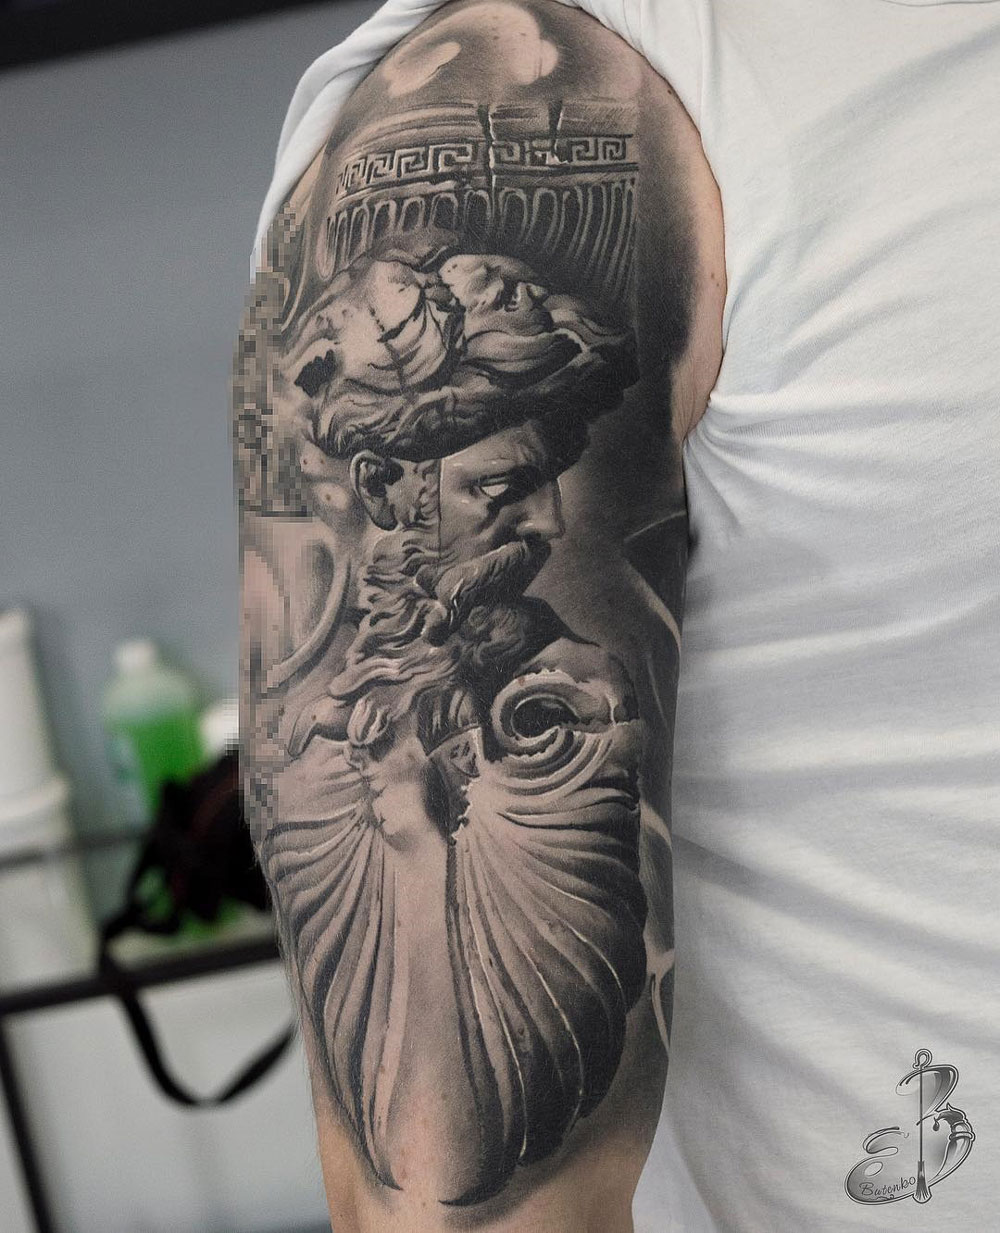 Zeus & Ruins Tattoo Idea